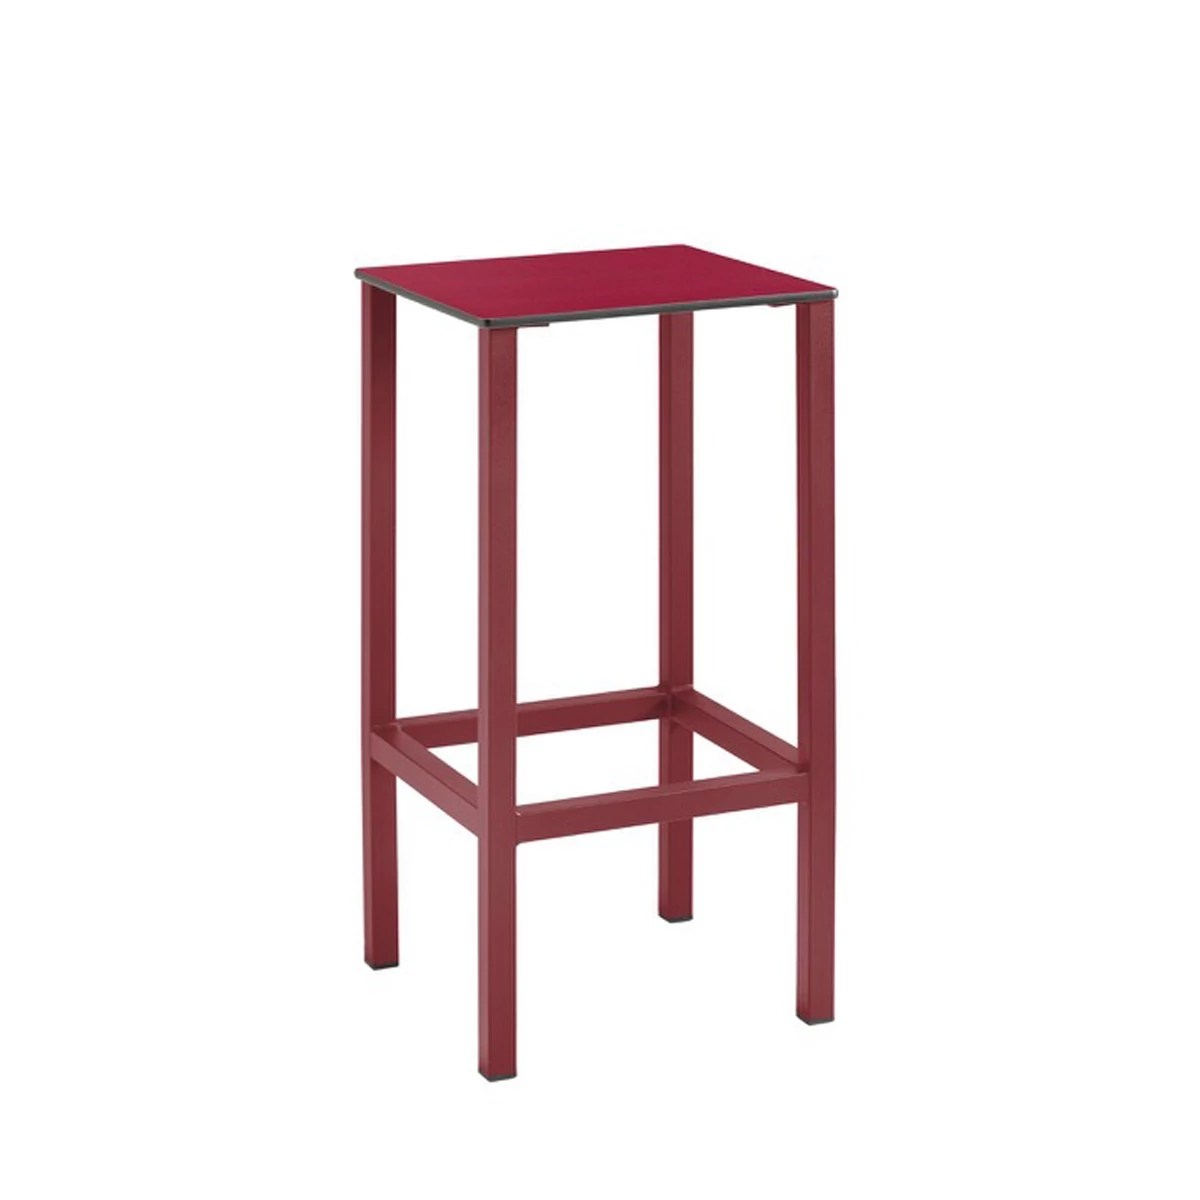 Tabouret De Bar De Jardin Tabouret De Bar Jardin Design London Isimar Zendart Design